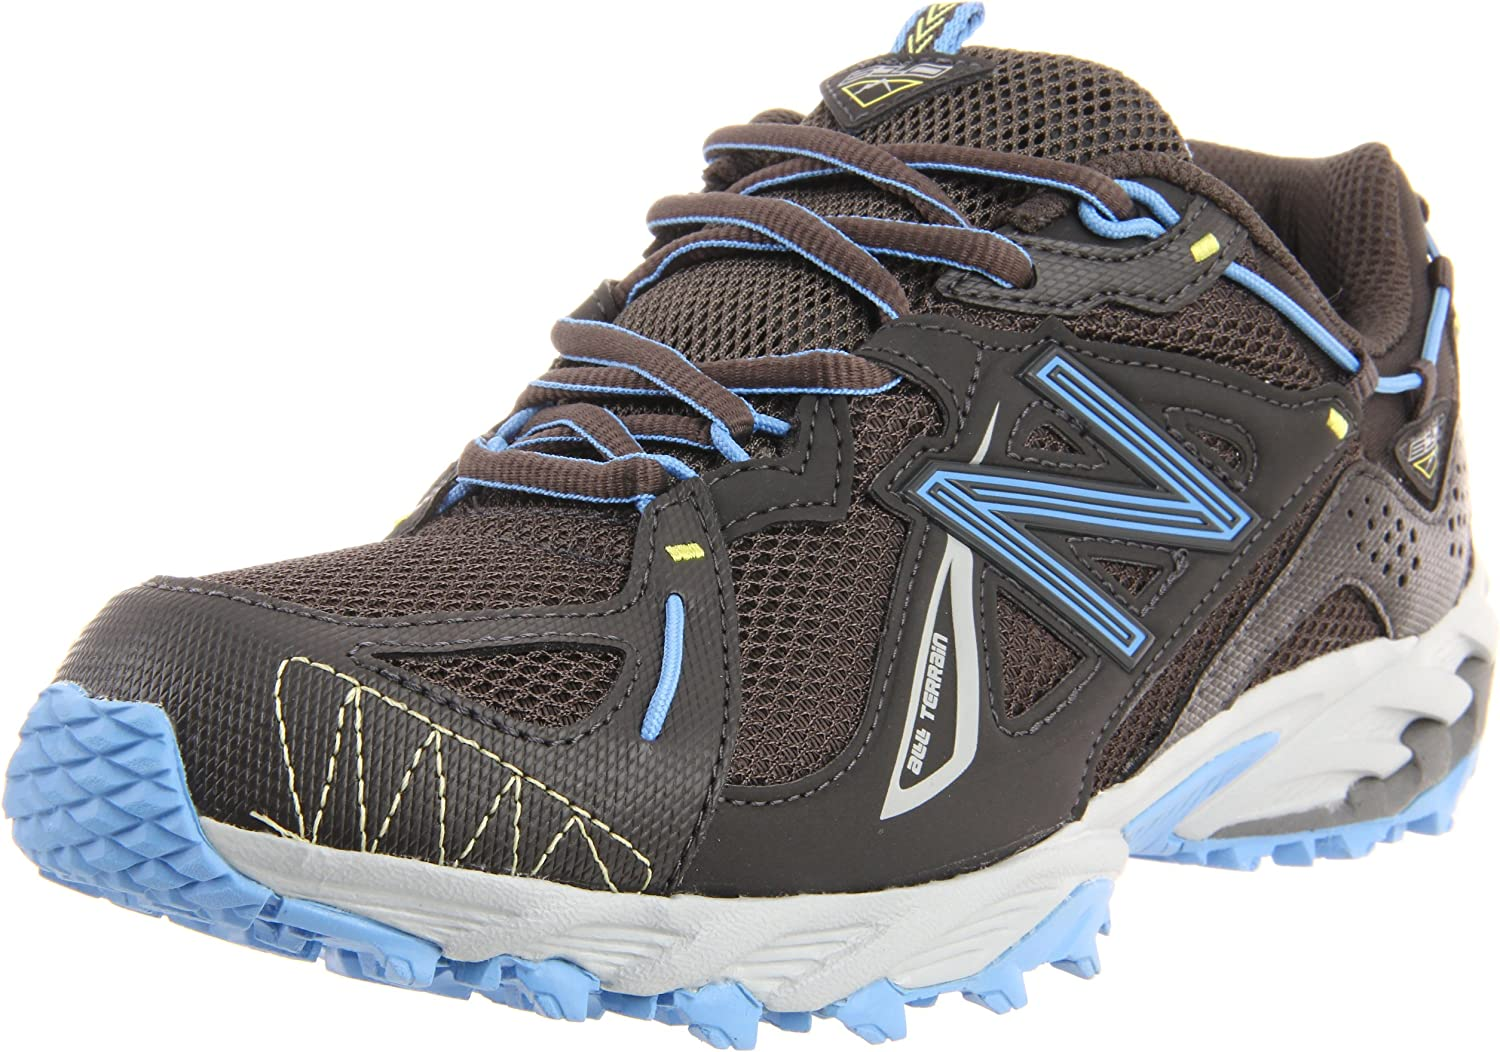 New Clearance SALE! Limited time! Balance Women's WT610-W Shoe Running Trail Ranking integrated 1st place